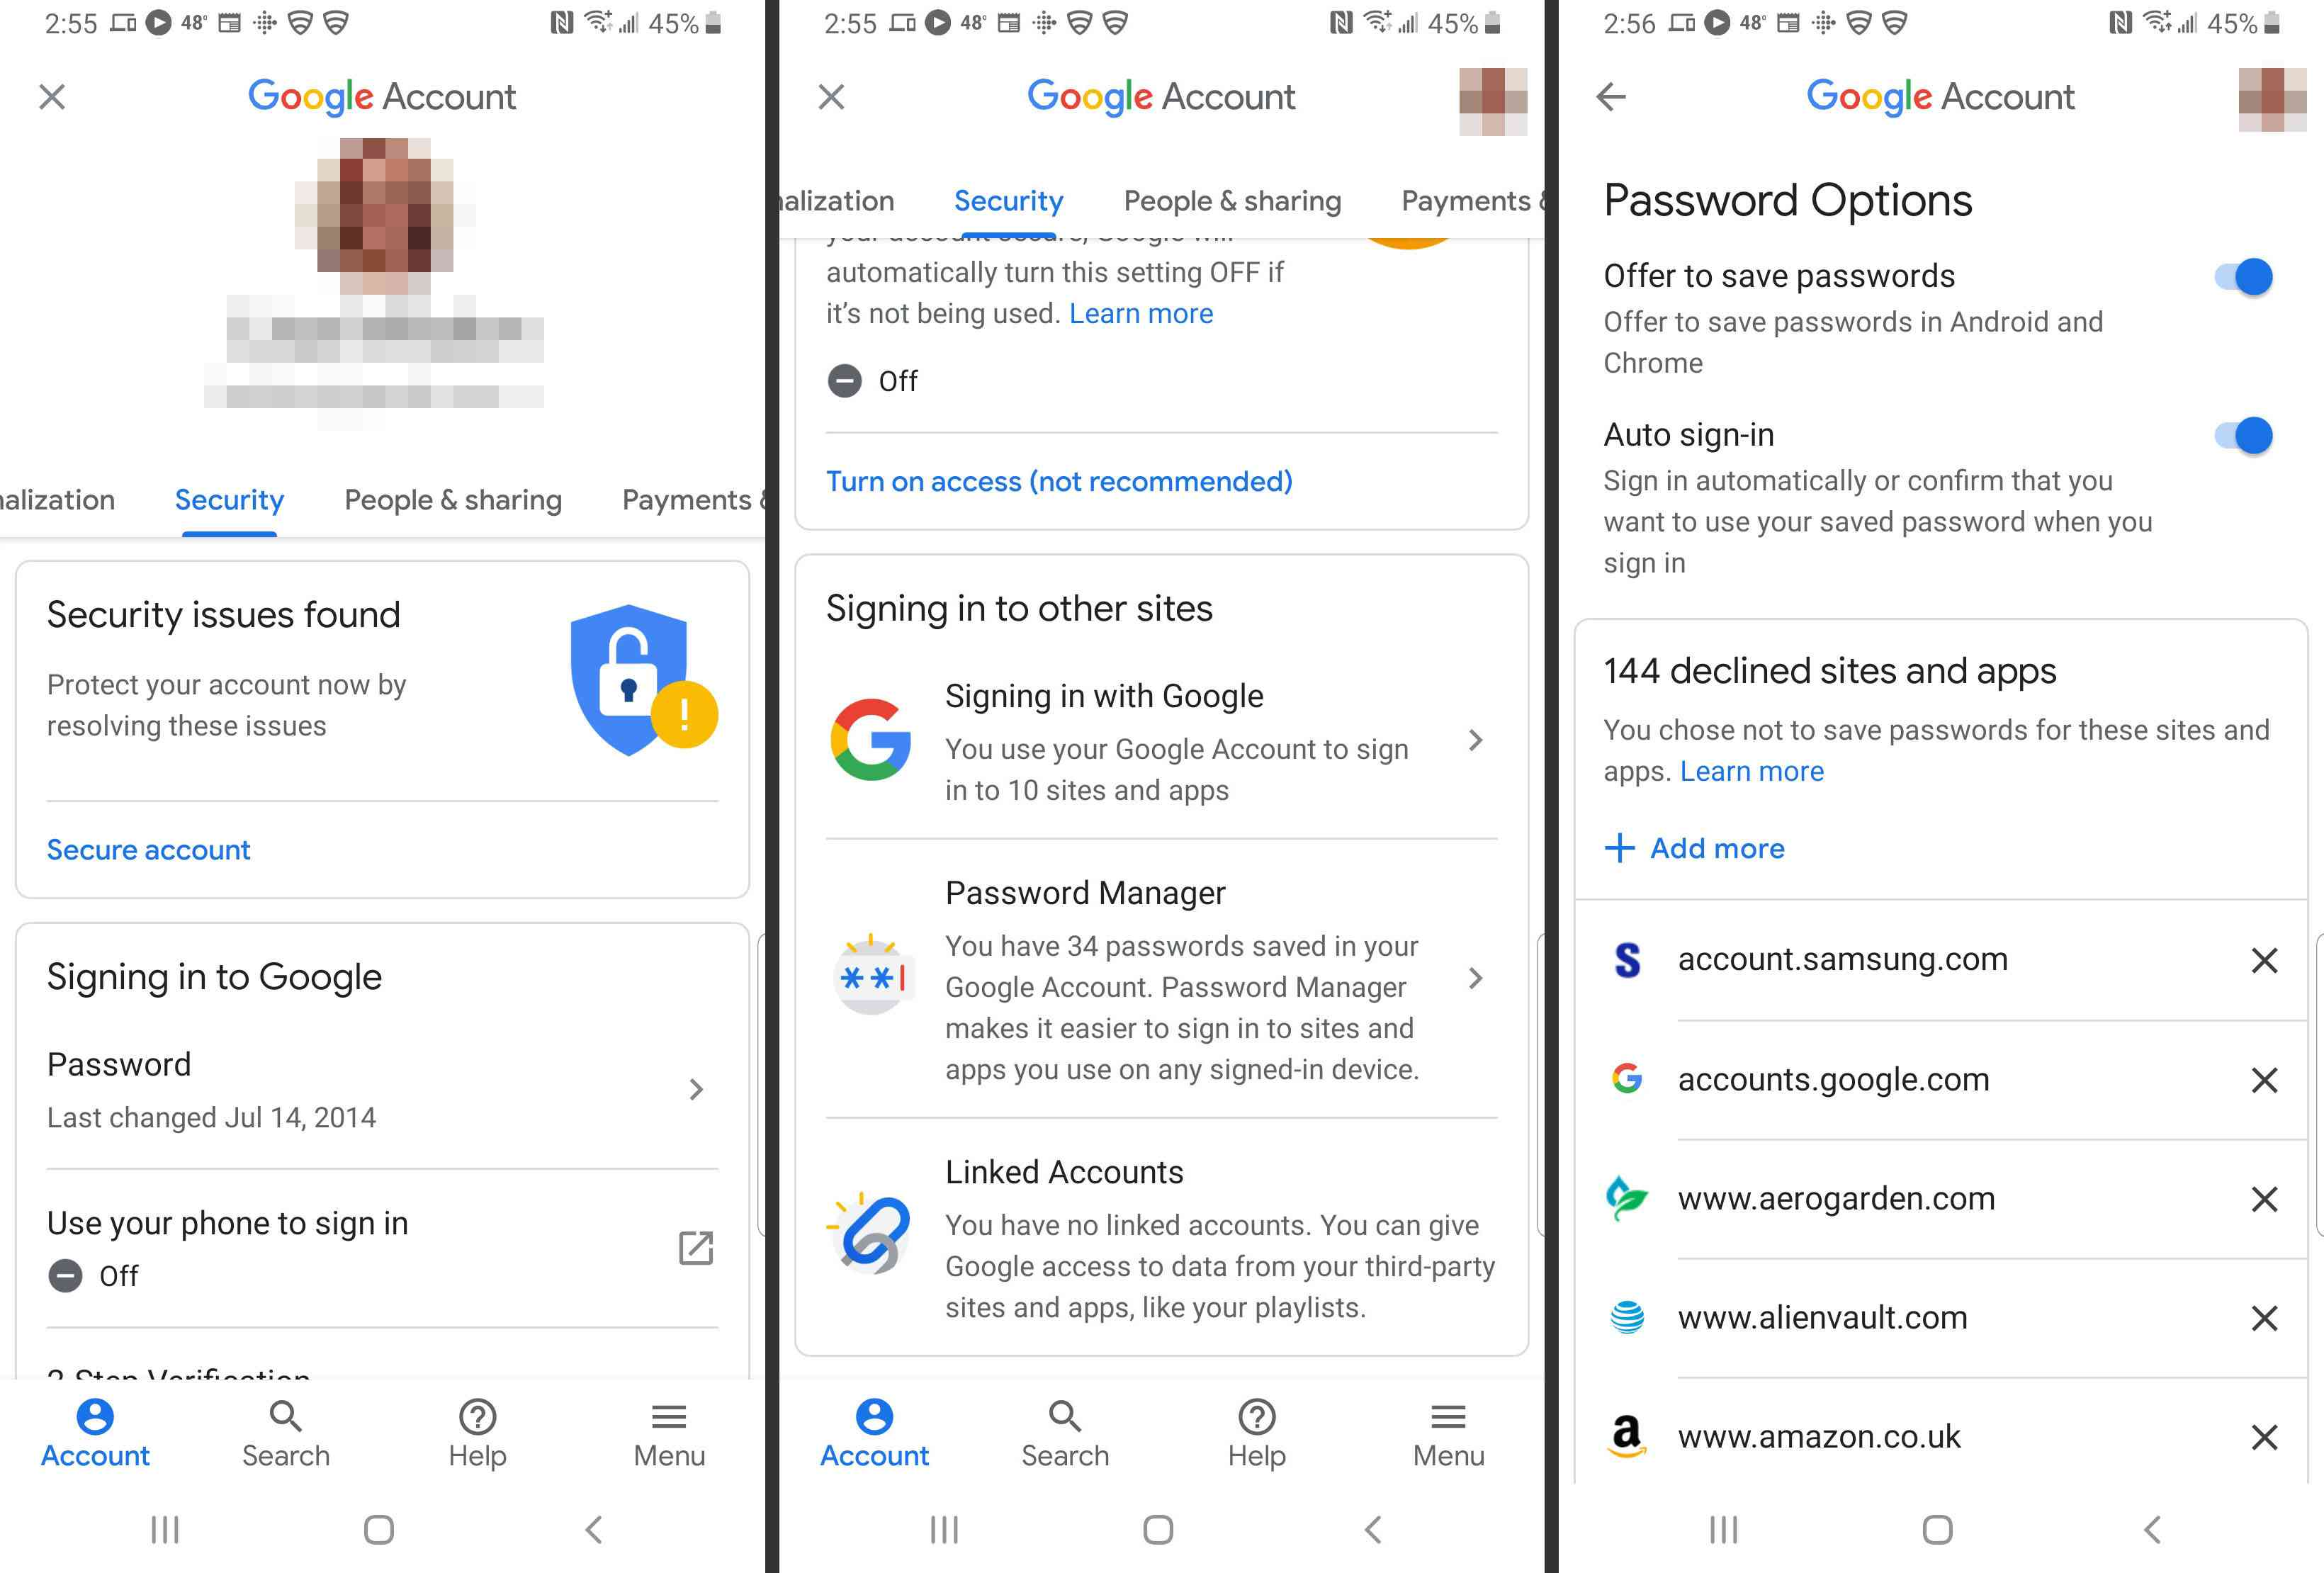 Google, Smart Lock for Passwords buttons and toggles for Smart Lock and Auto sign-in